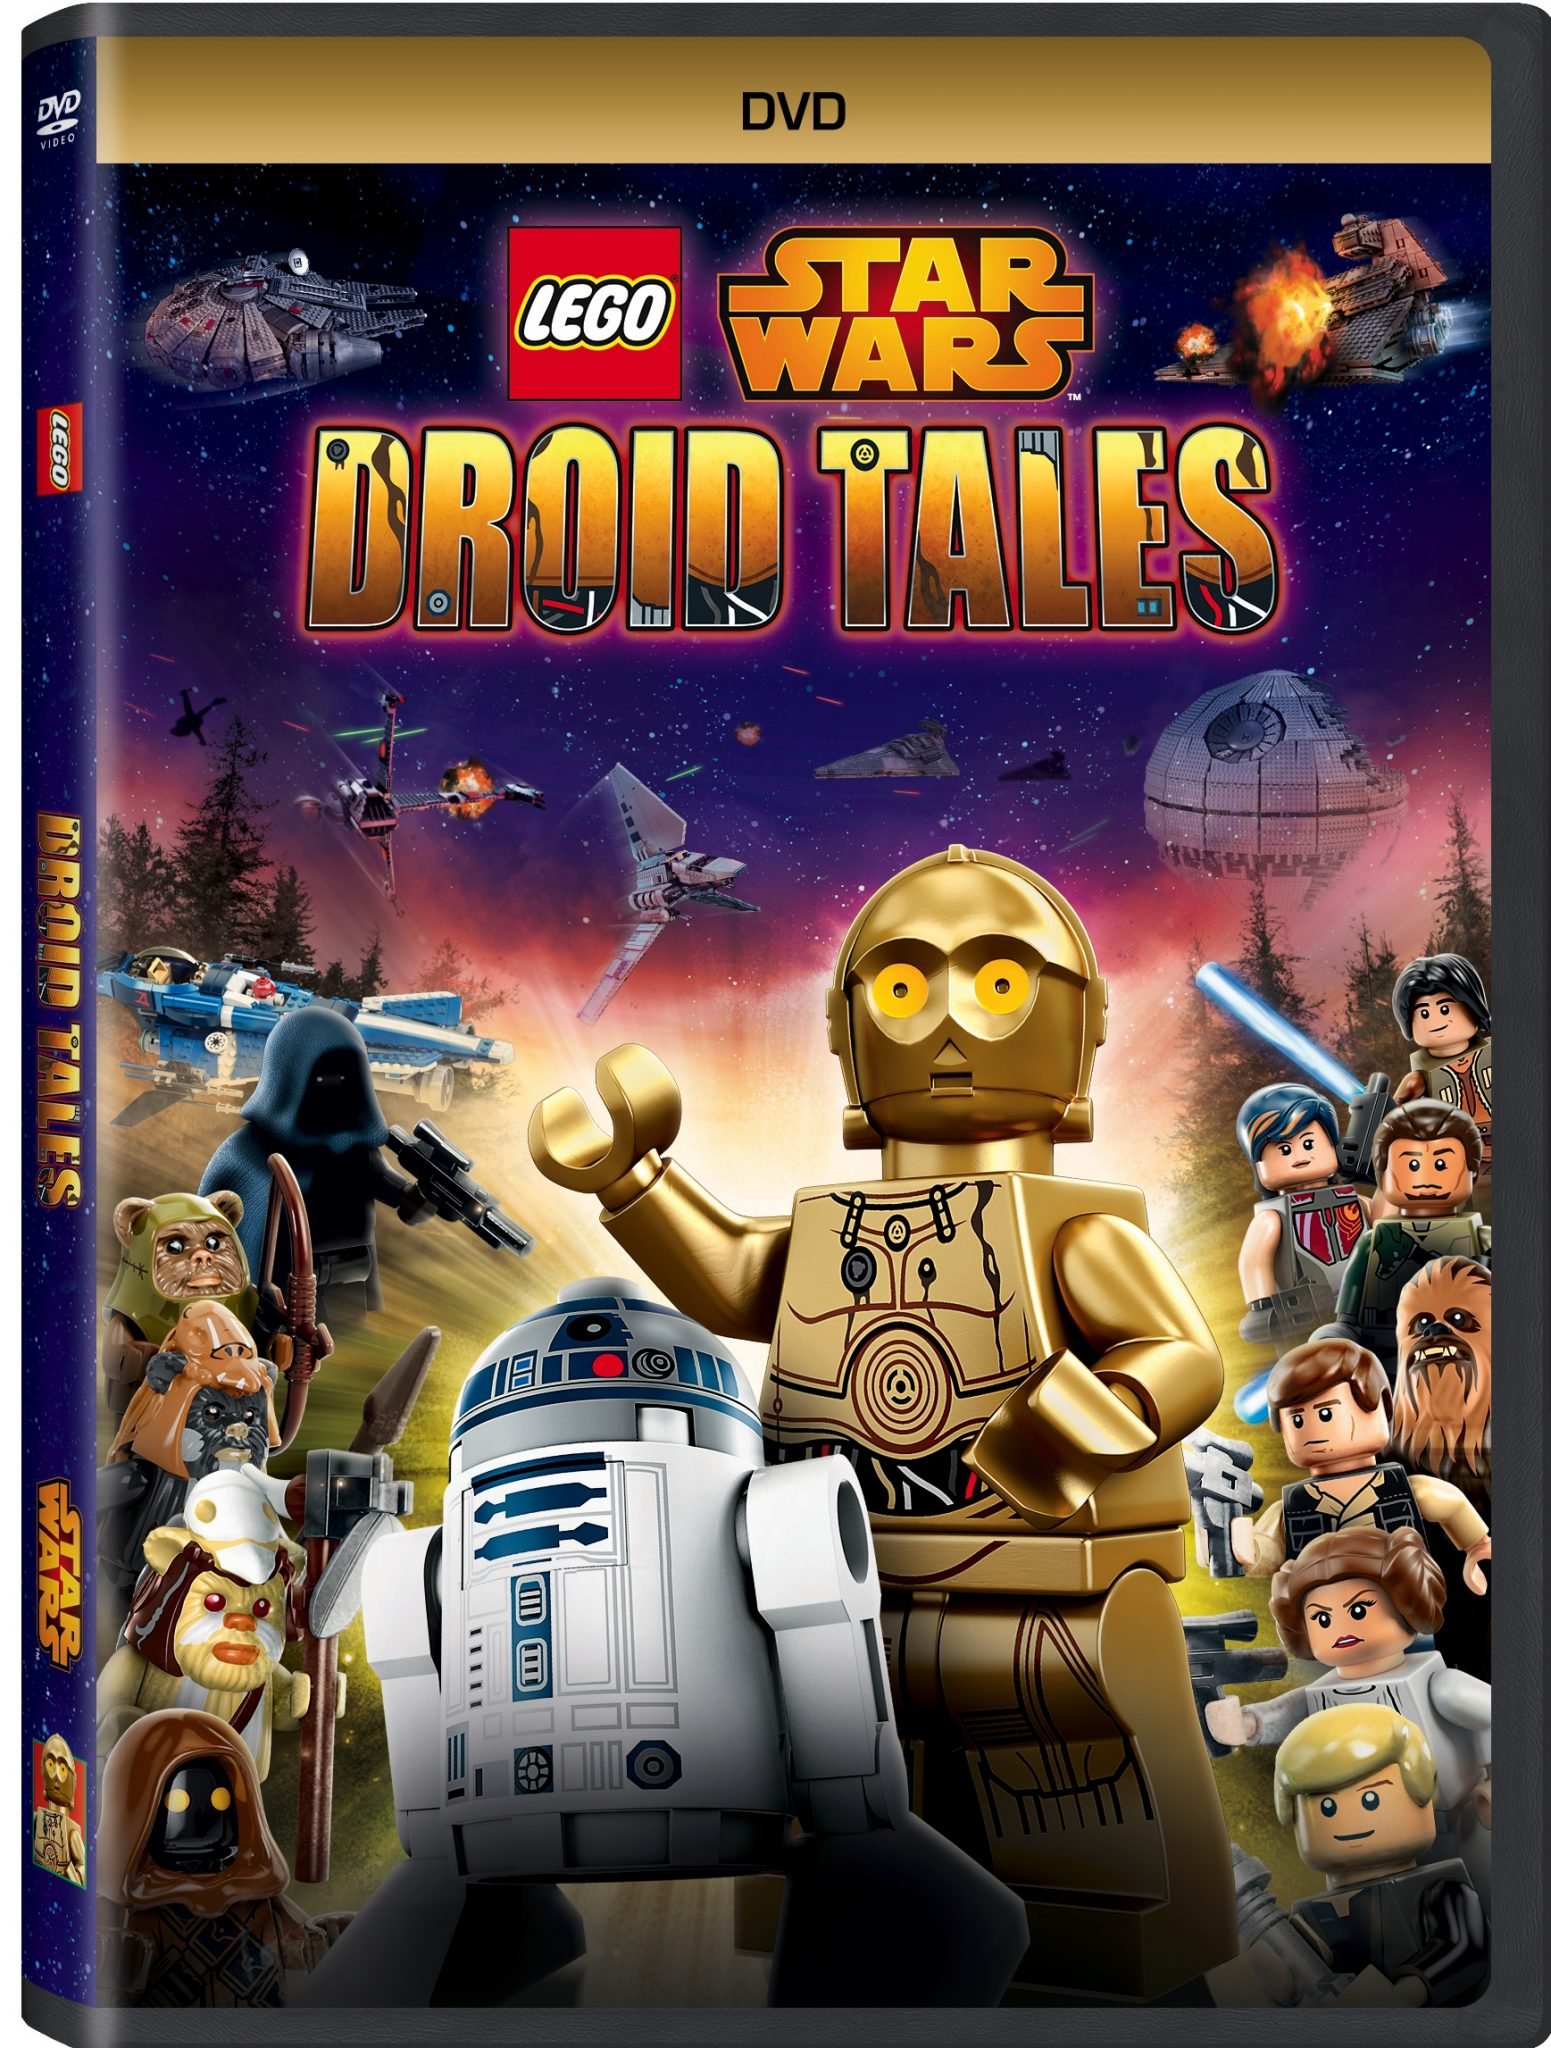 The Adventurous 'LEGO® STAR WARS: Droid Tales' Soon to be Available on DVD